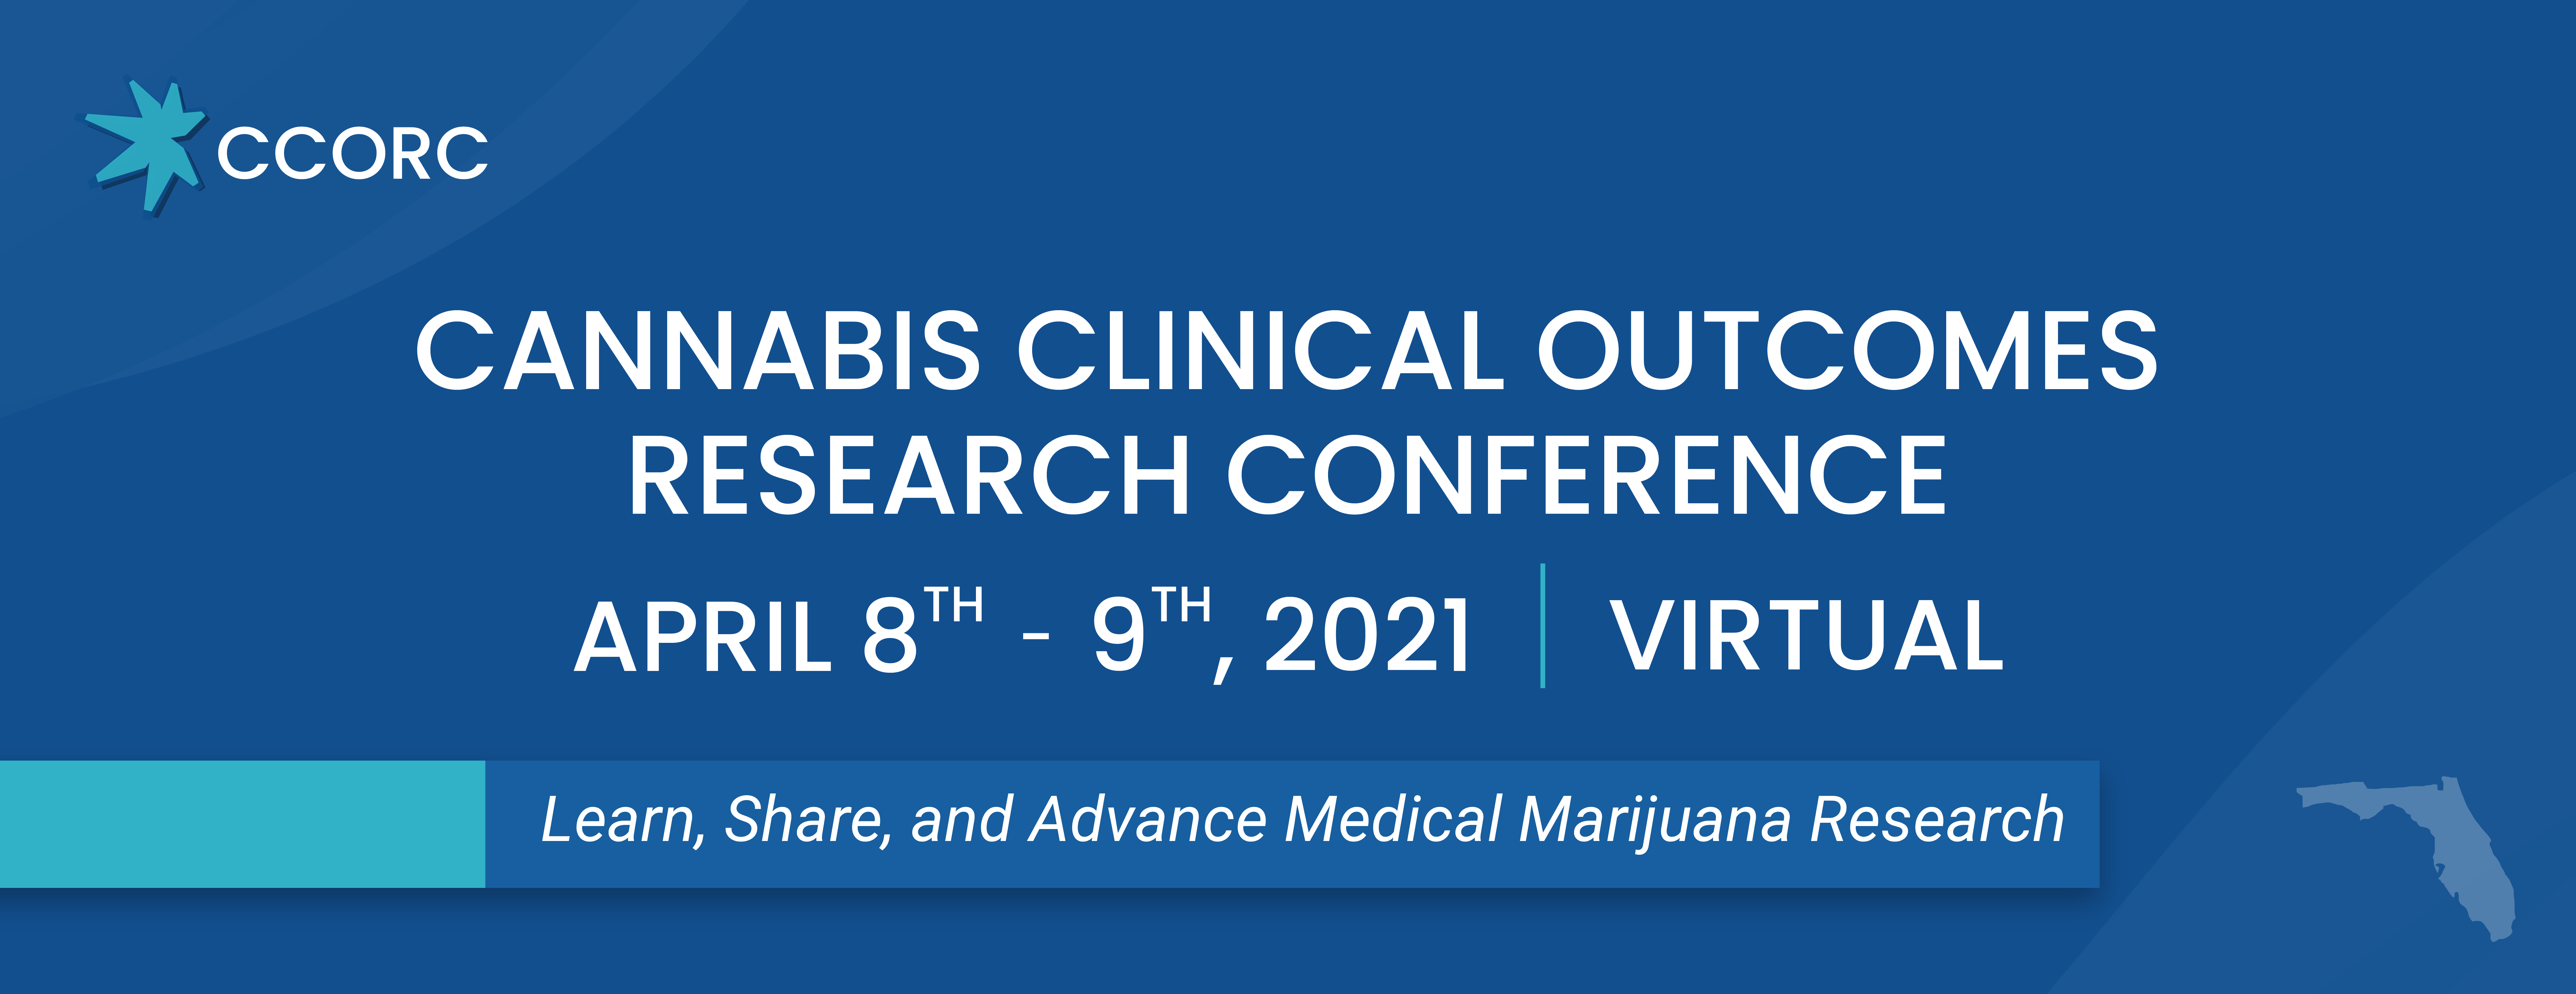 Consortium for Medical Marijuana Clinical Outcomes Research Conference